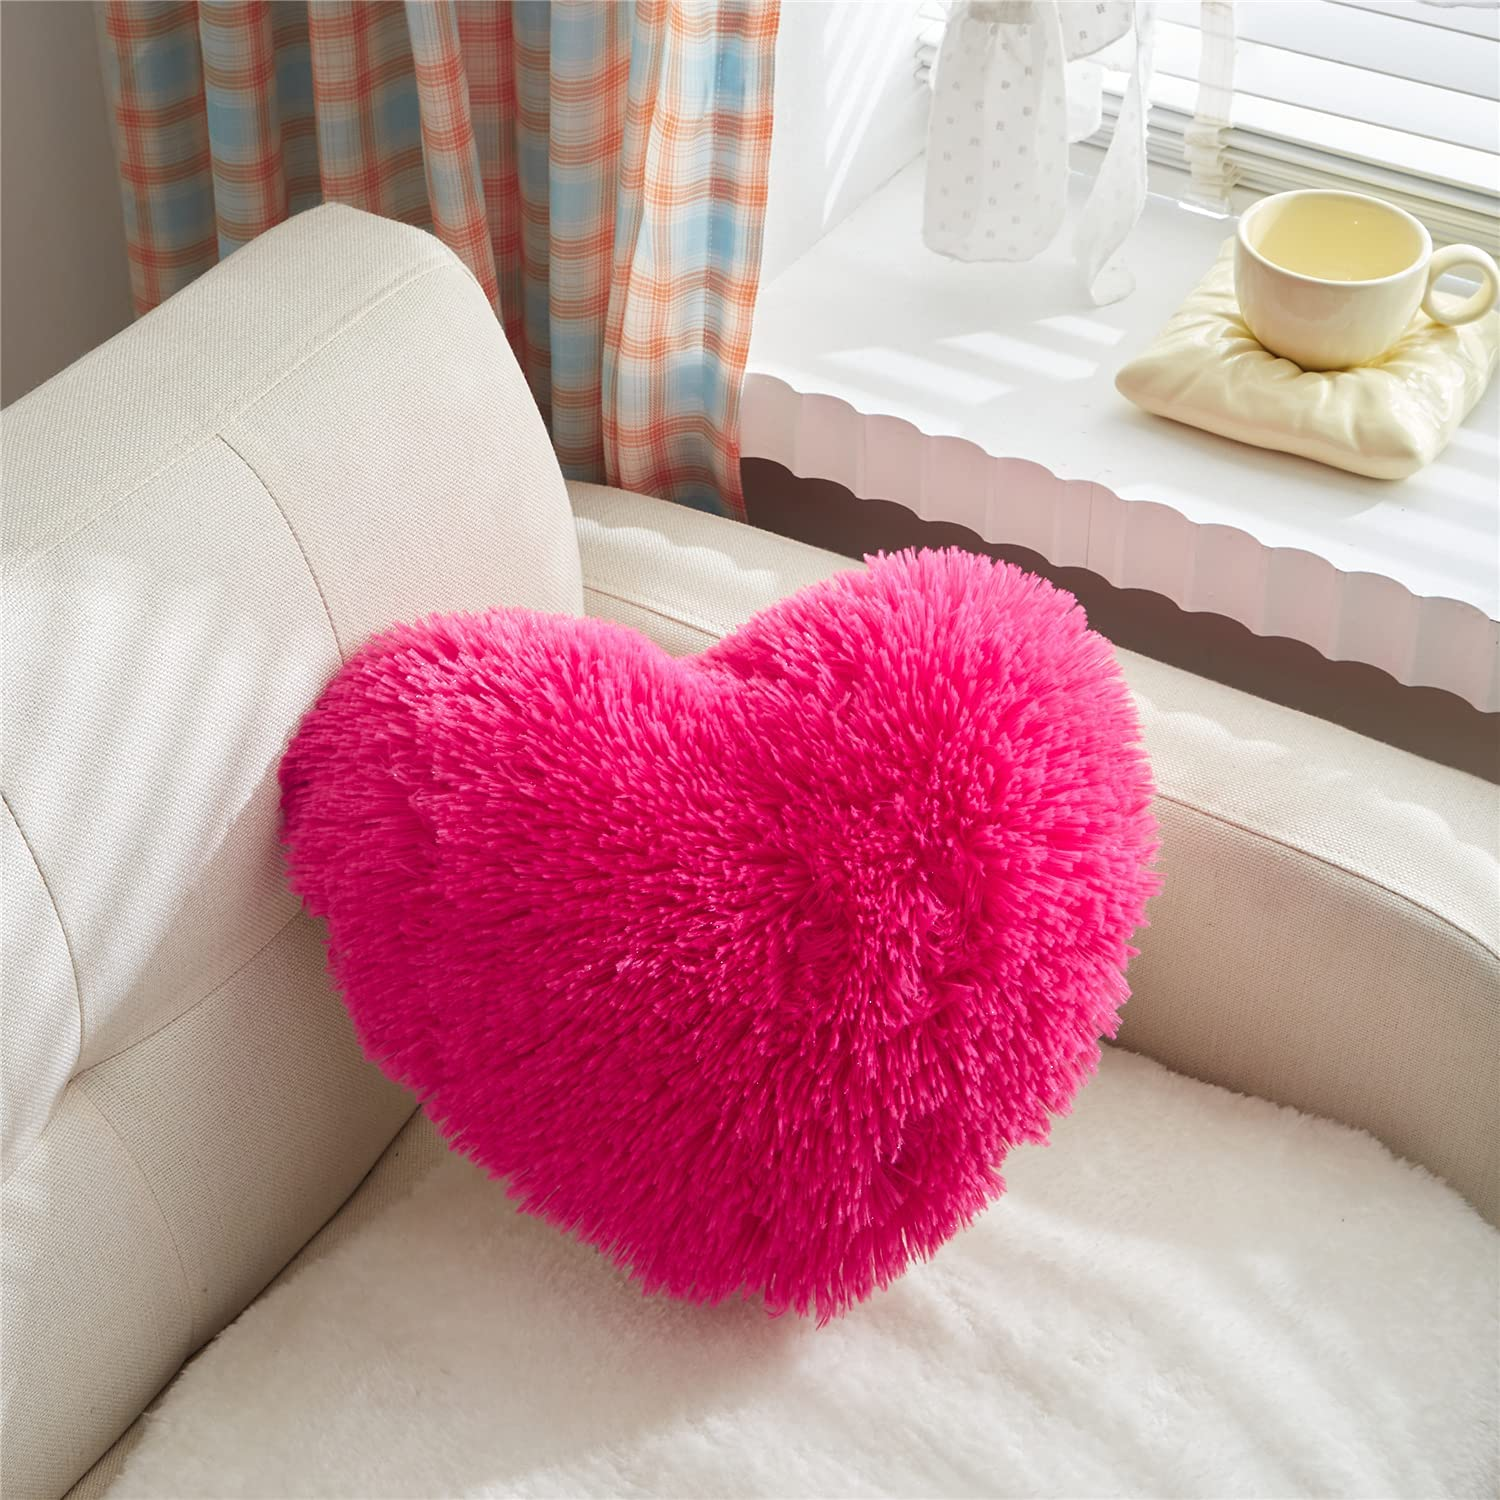 valentines-day-gifts-for-kids-pillow